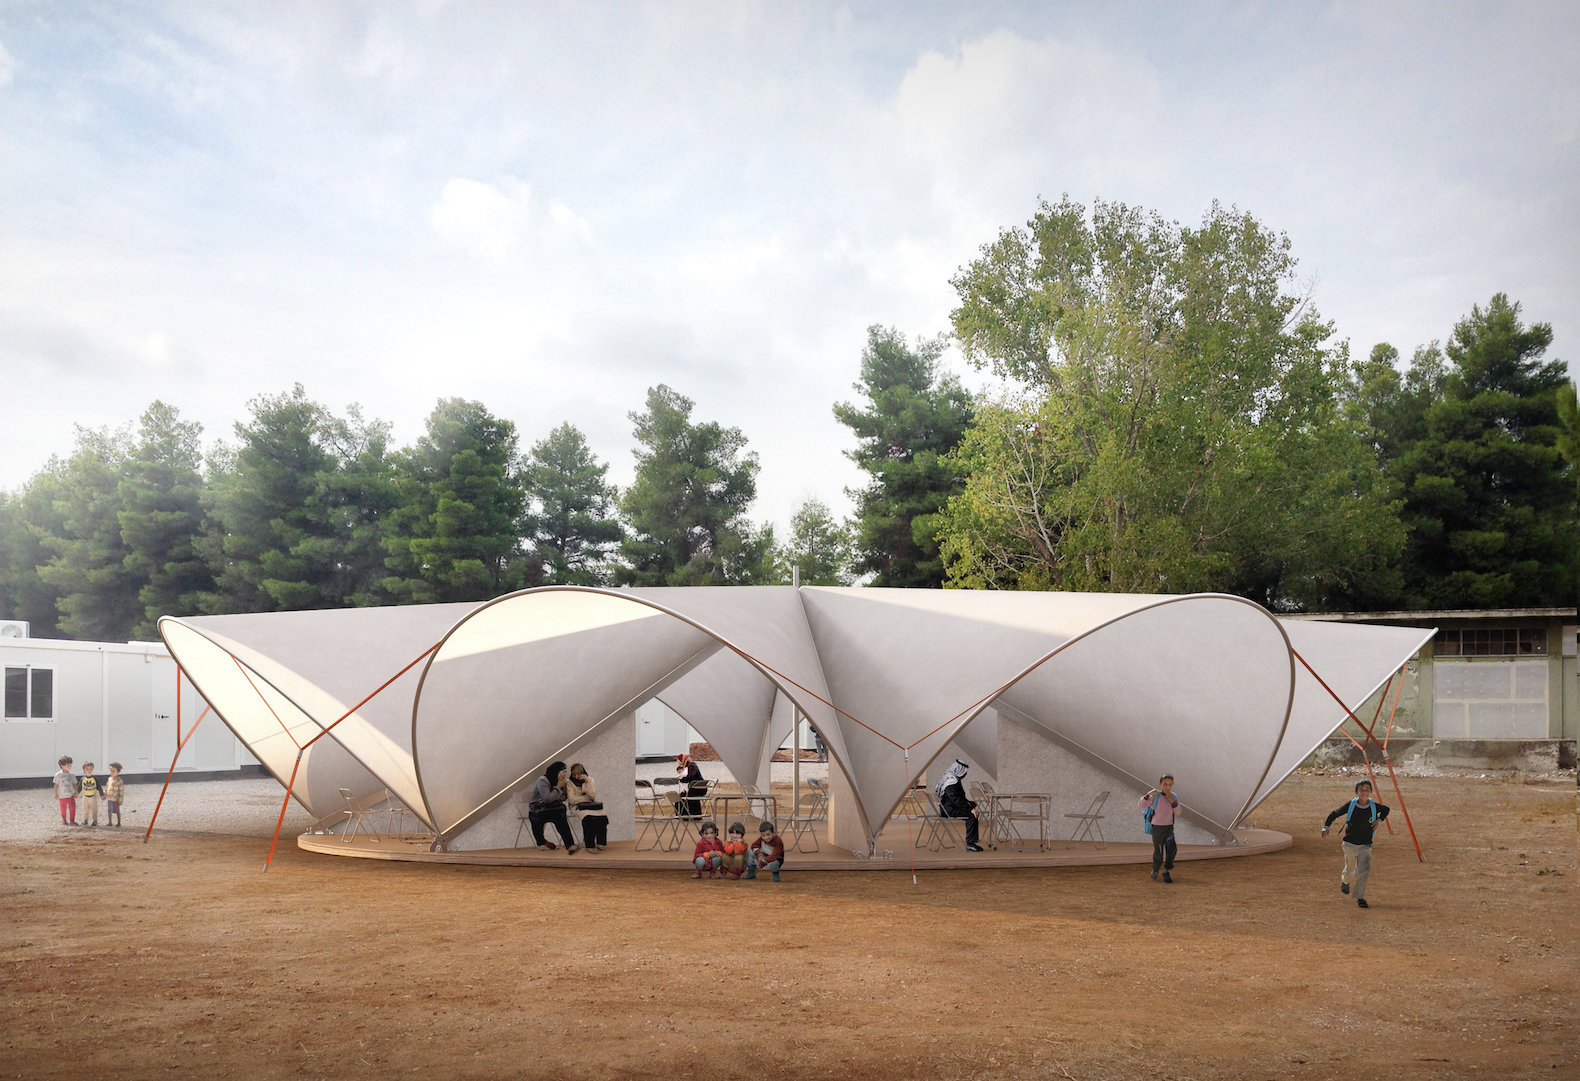 Maidan Tent aims to improve life in refugee c&s with pop-up public space & TENT | Inhabitat - Green Design Innovation Architecture Green ...